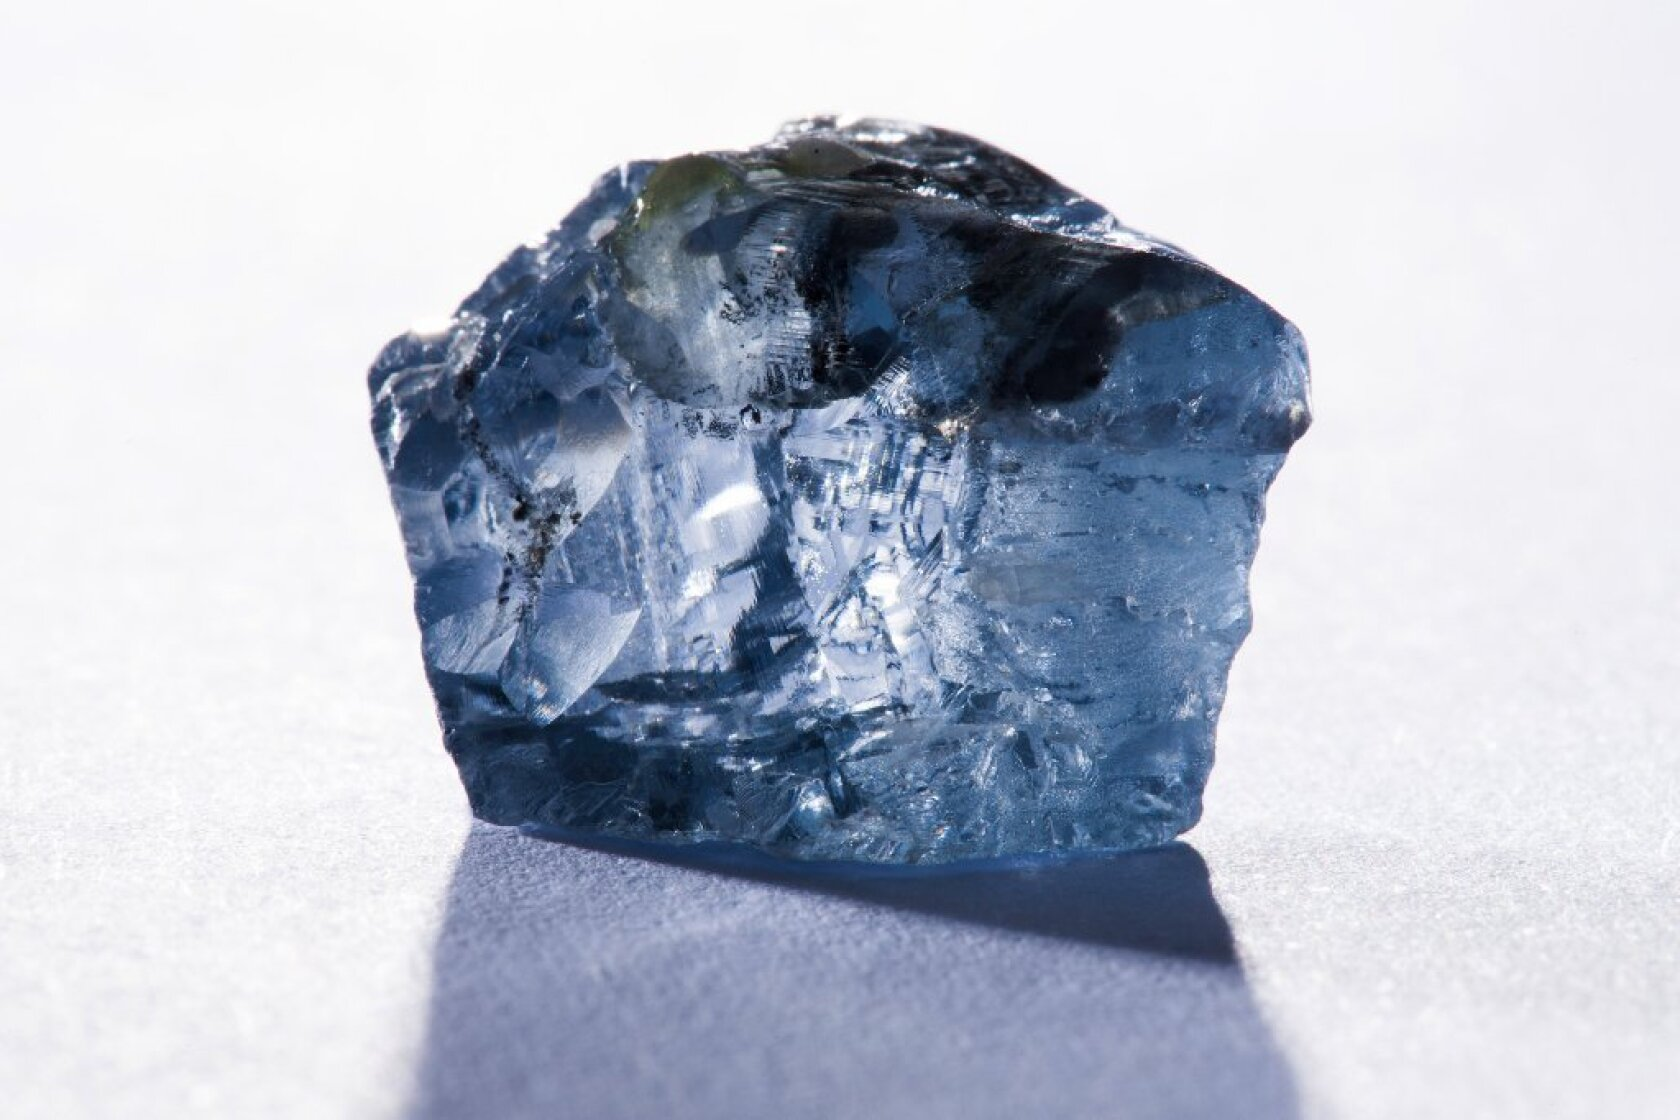 Rare Hefty Blue Diamond Found In South Africa Check Out These Gems Los Angeles Times